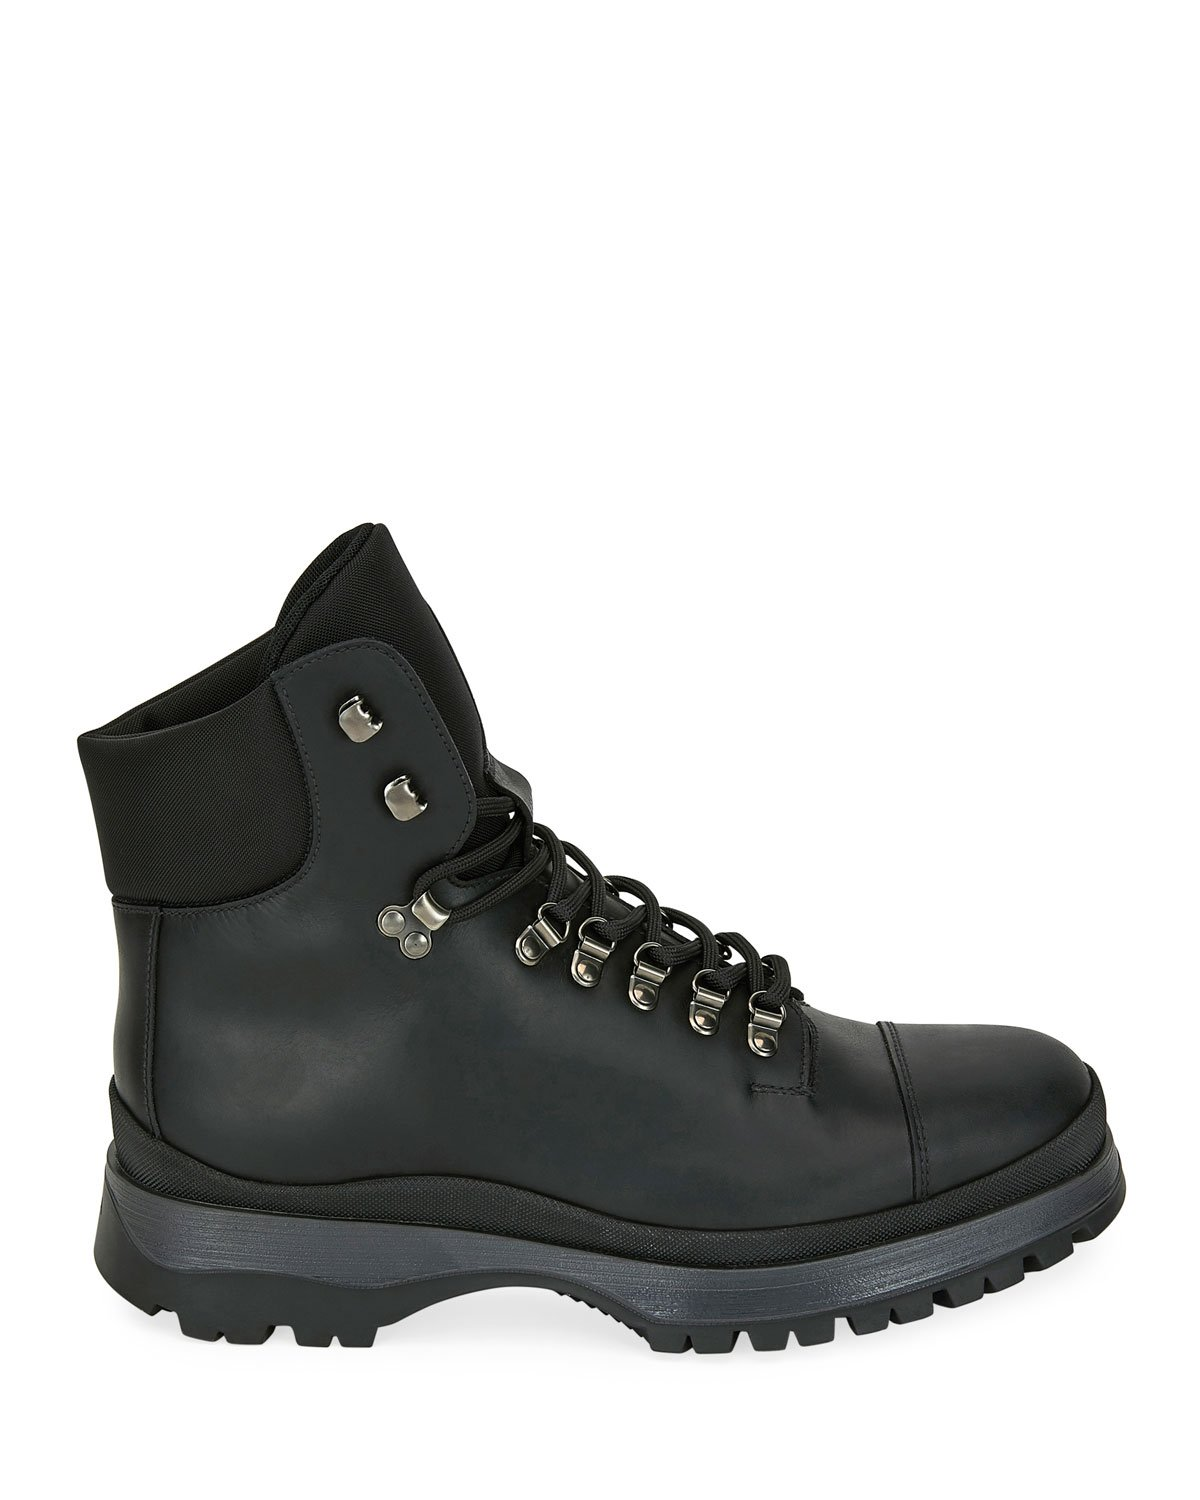 Prada Lace-Up Leather Hiker Boots